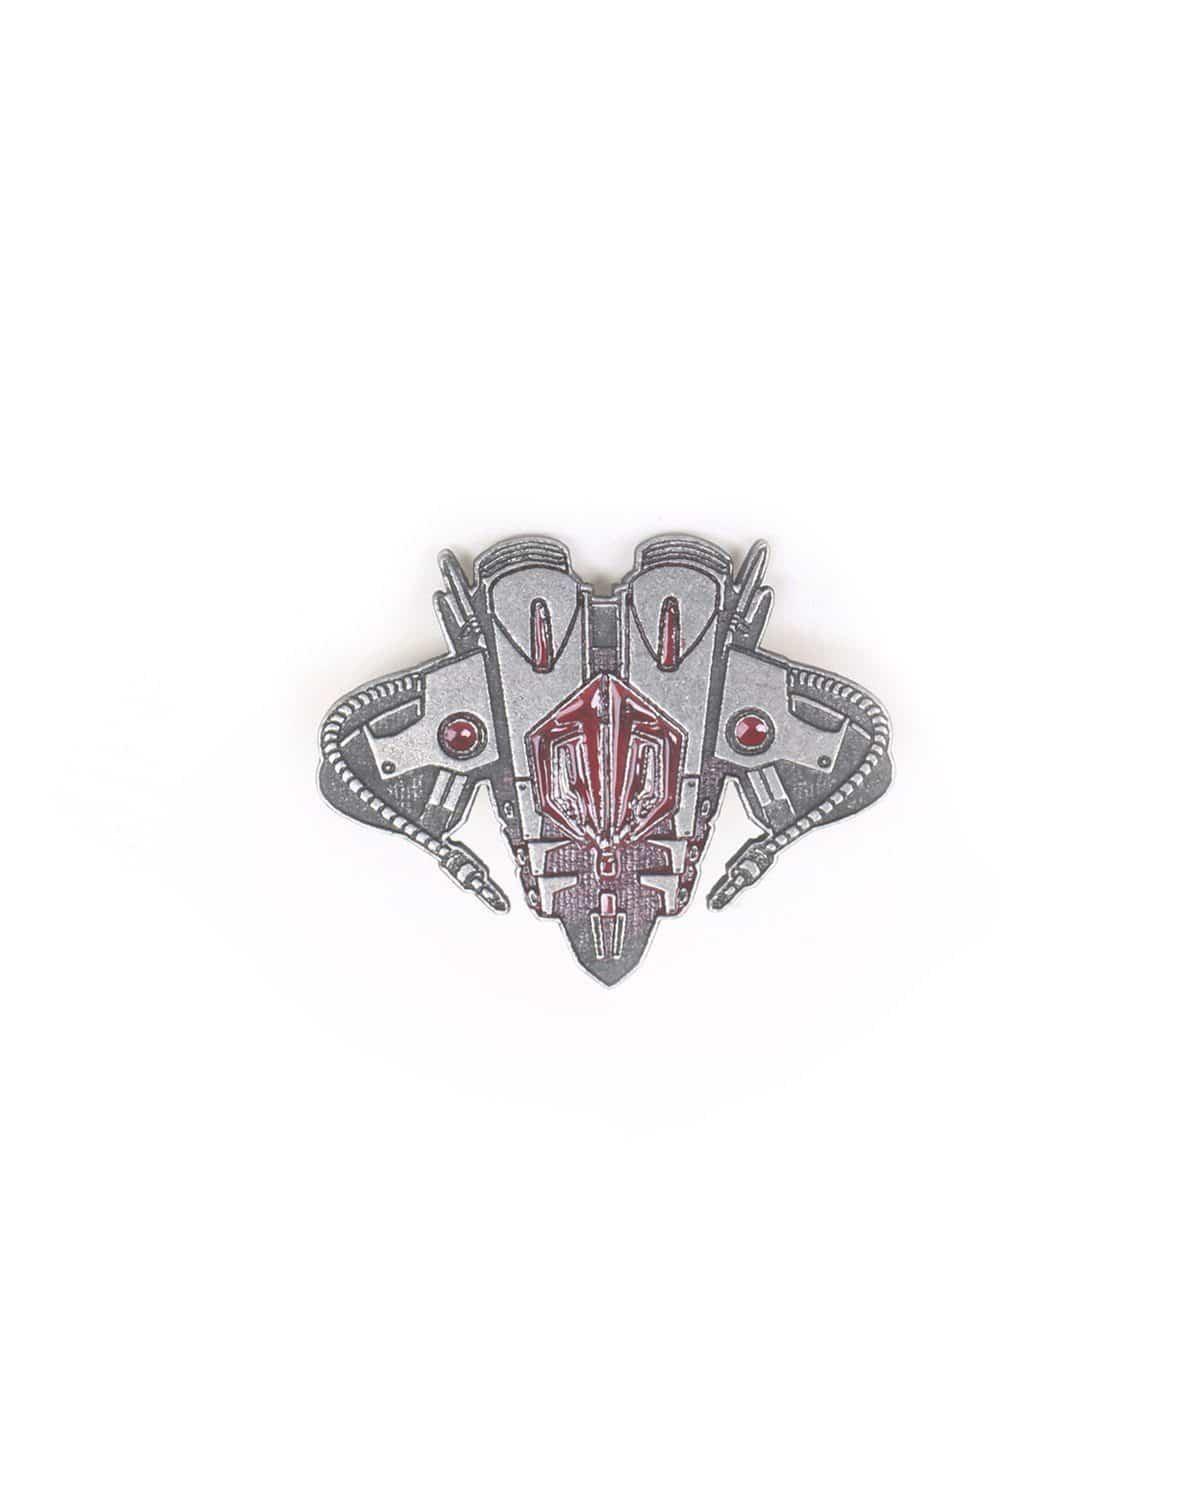 Destroid 'Ship' Hat Pin